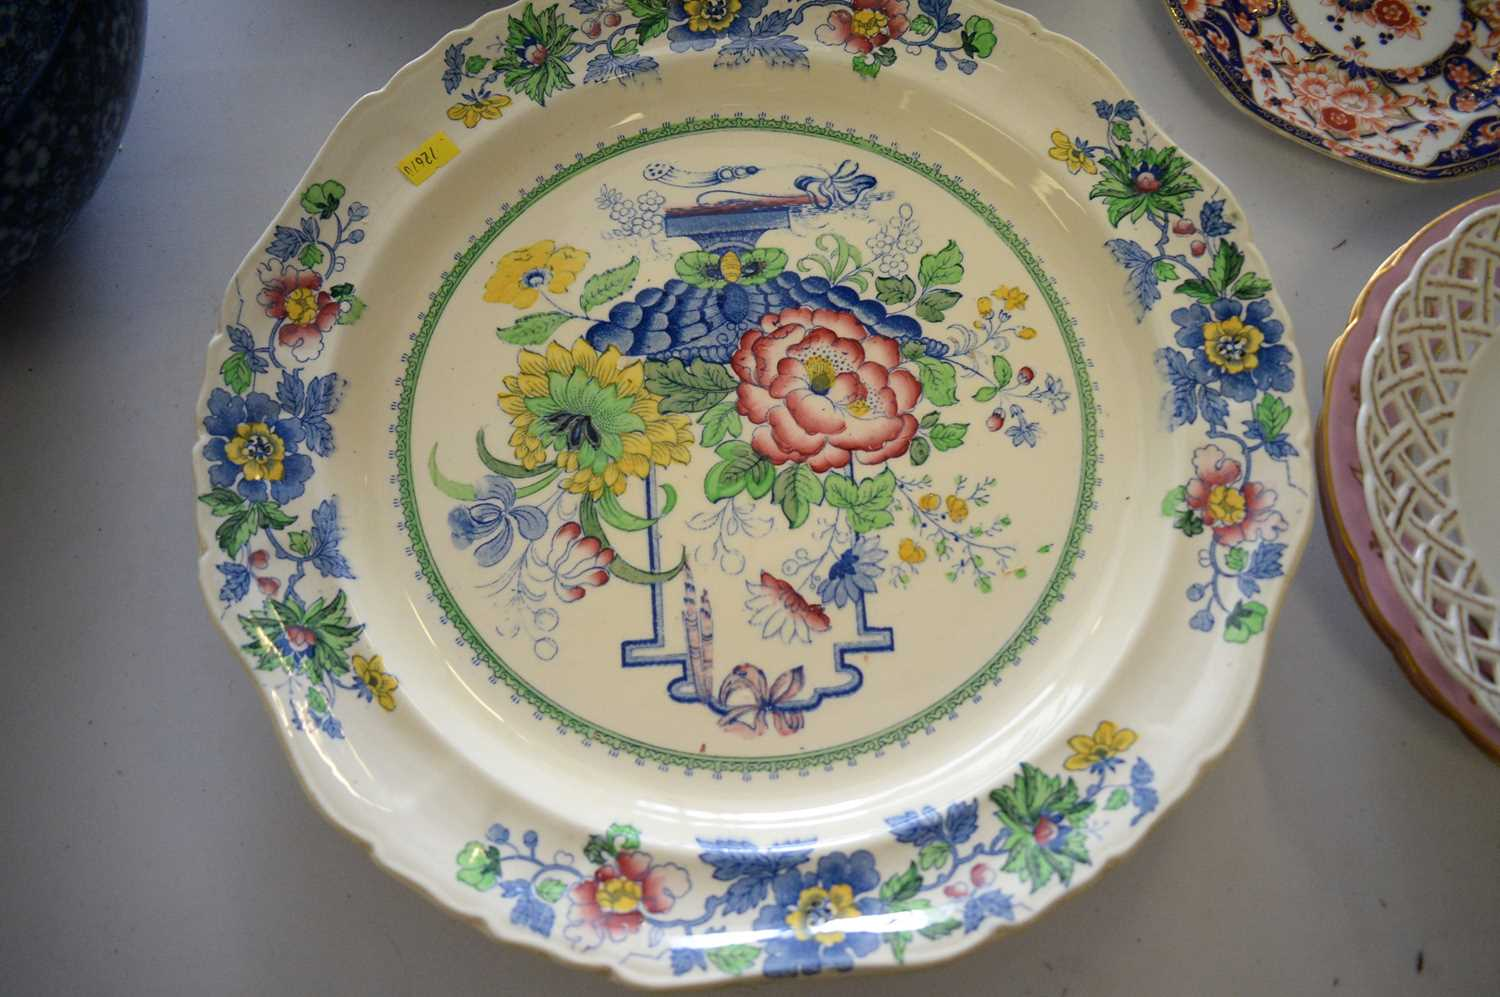 Ceramics by Doulton, Masons and others. - Image 3 of 3